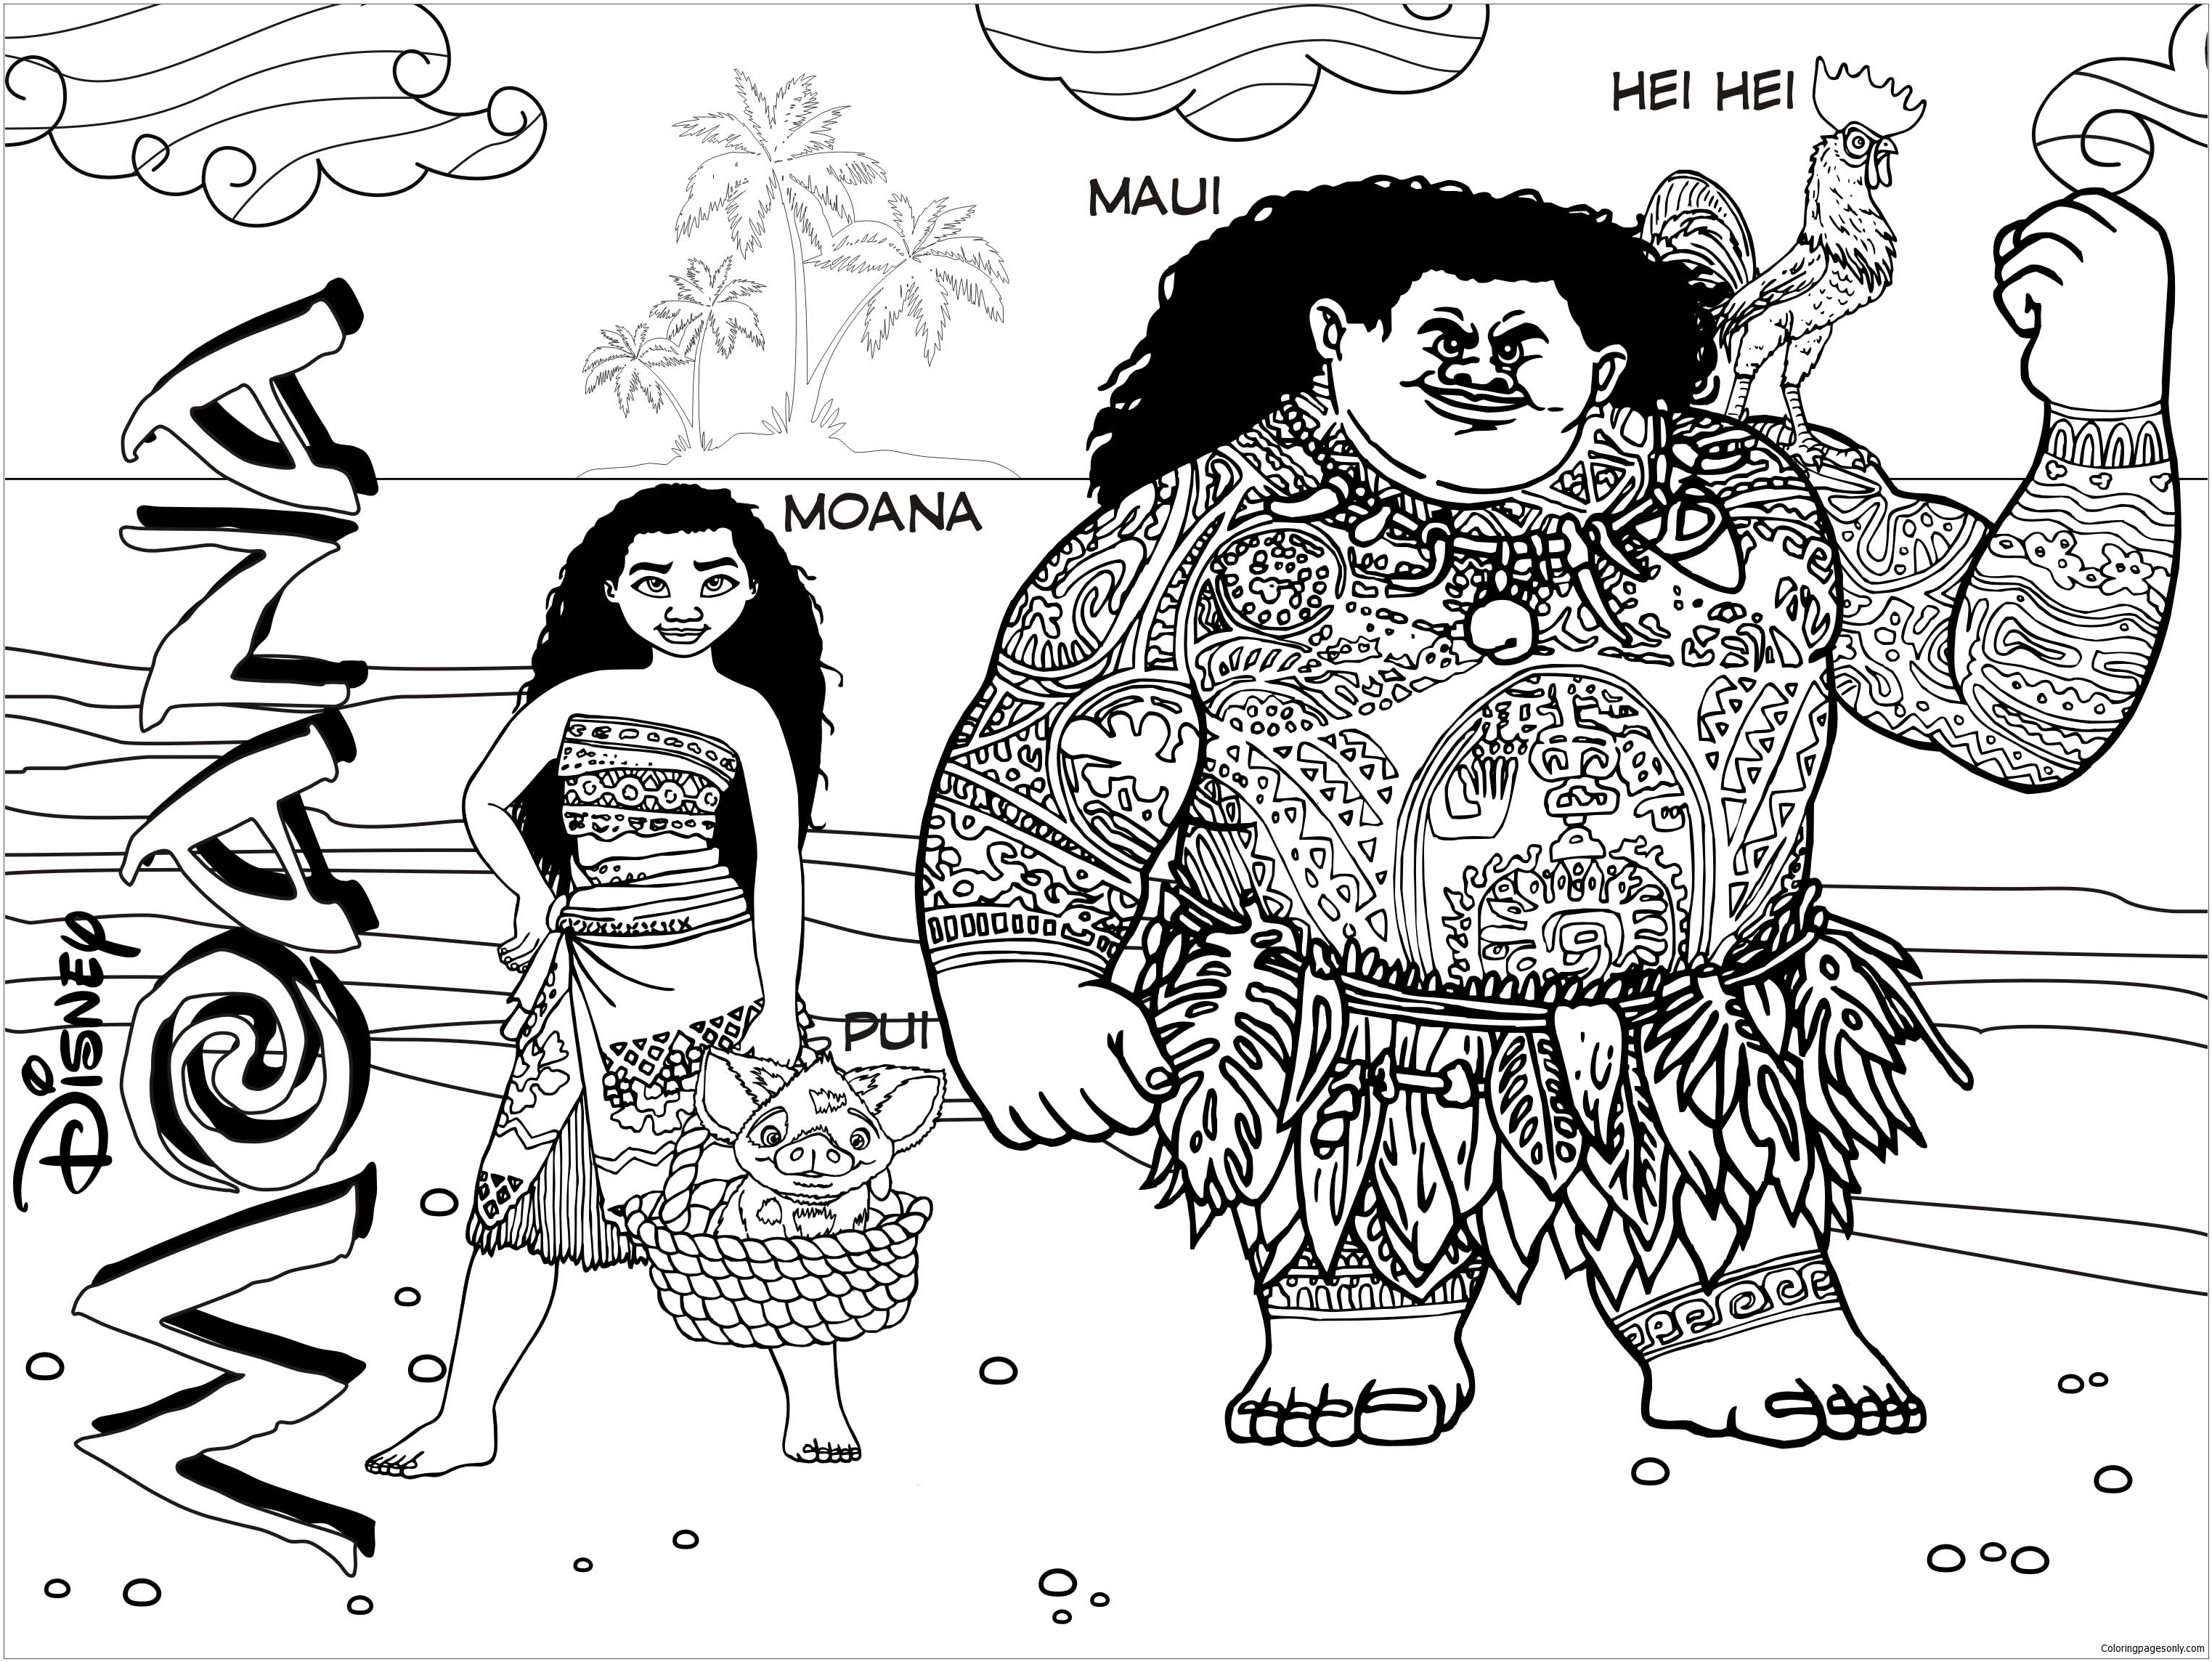 Moana And Maui 3 Coloring Page Free Coloring Pages Online